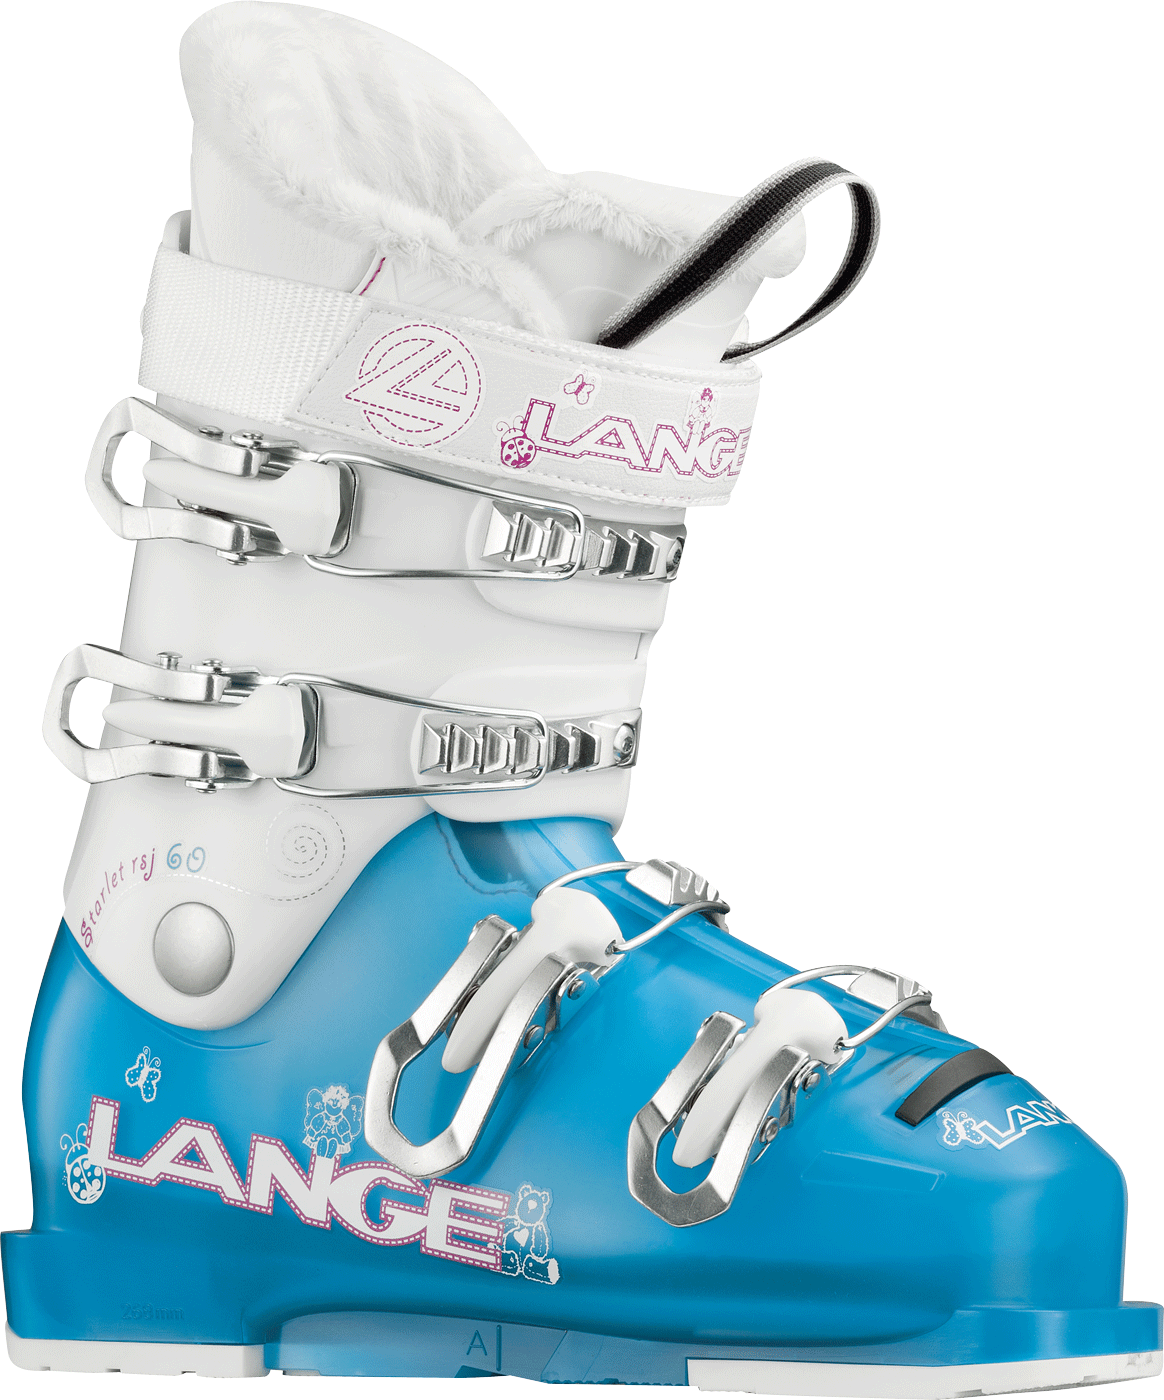 Lange RXJ Junior ski boot 2017